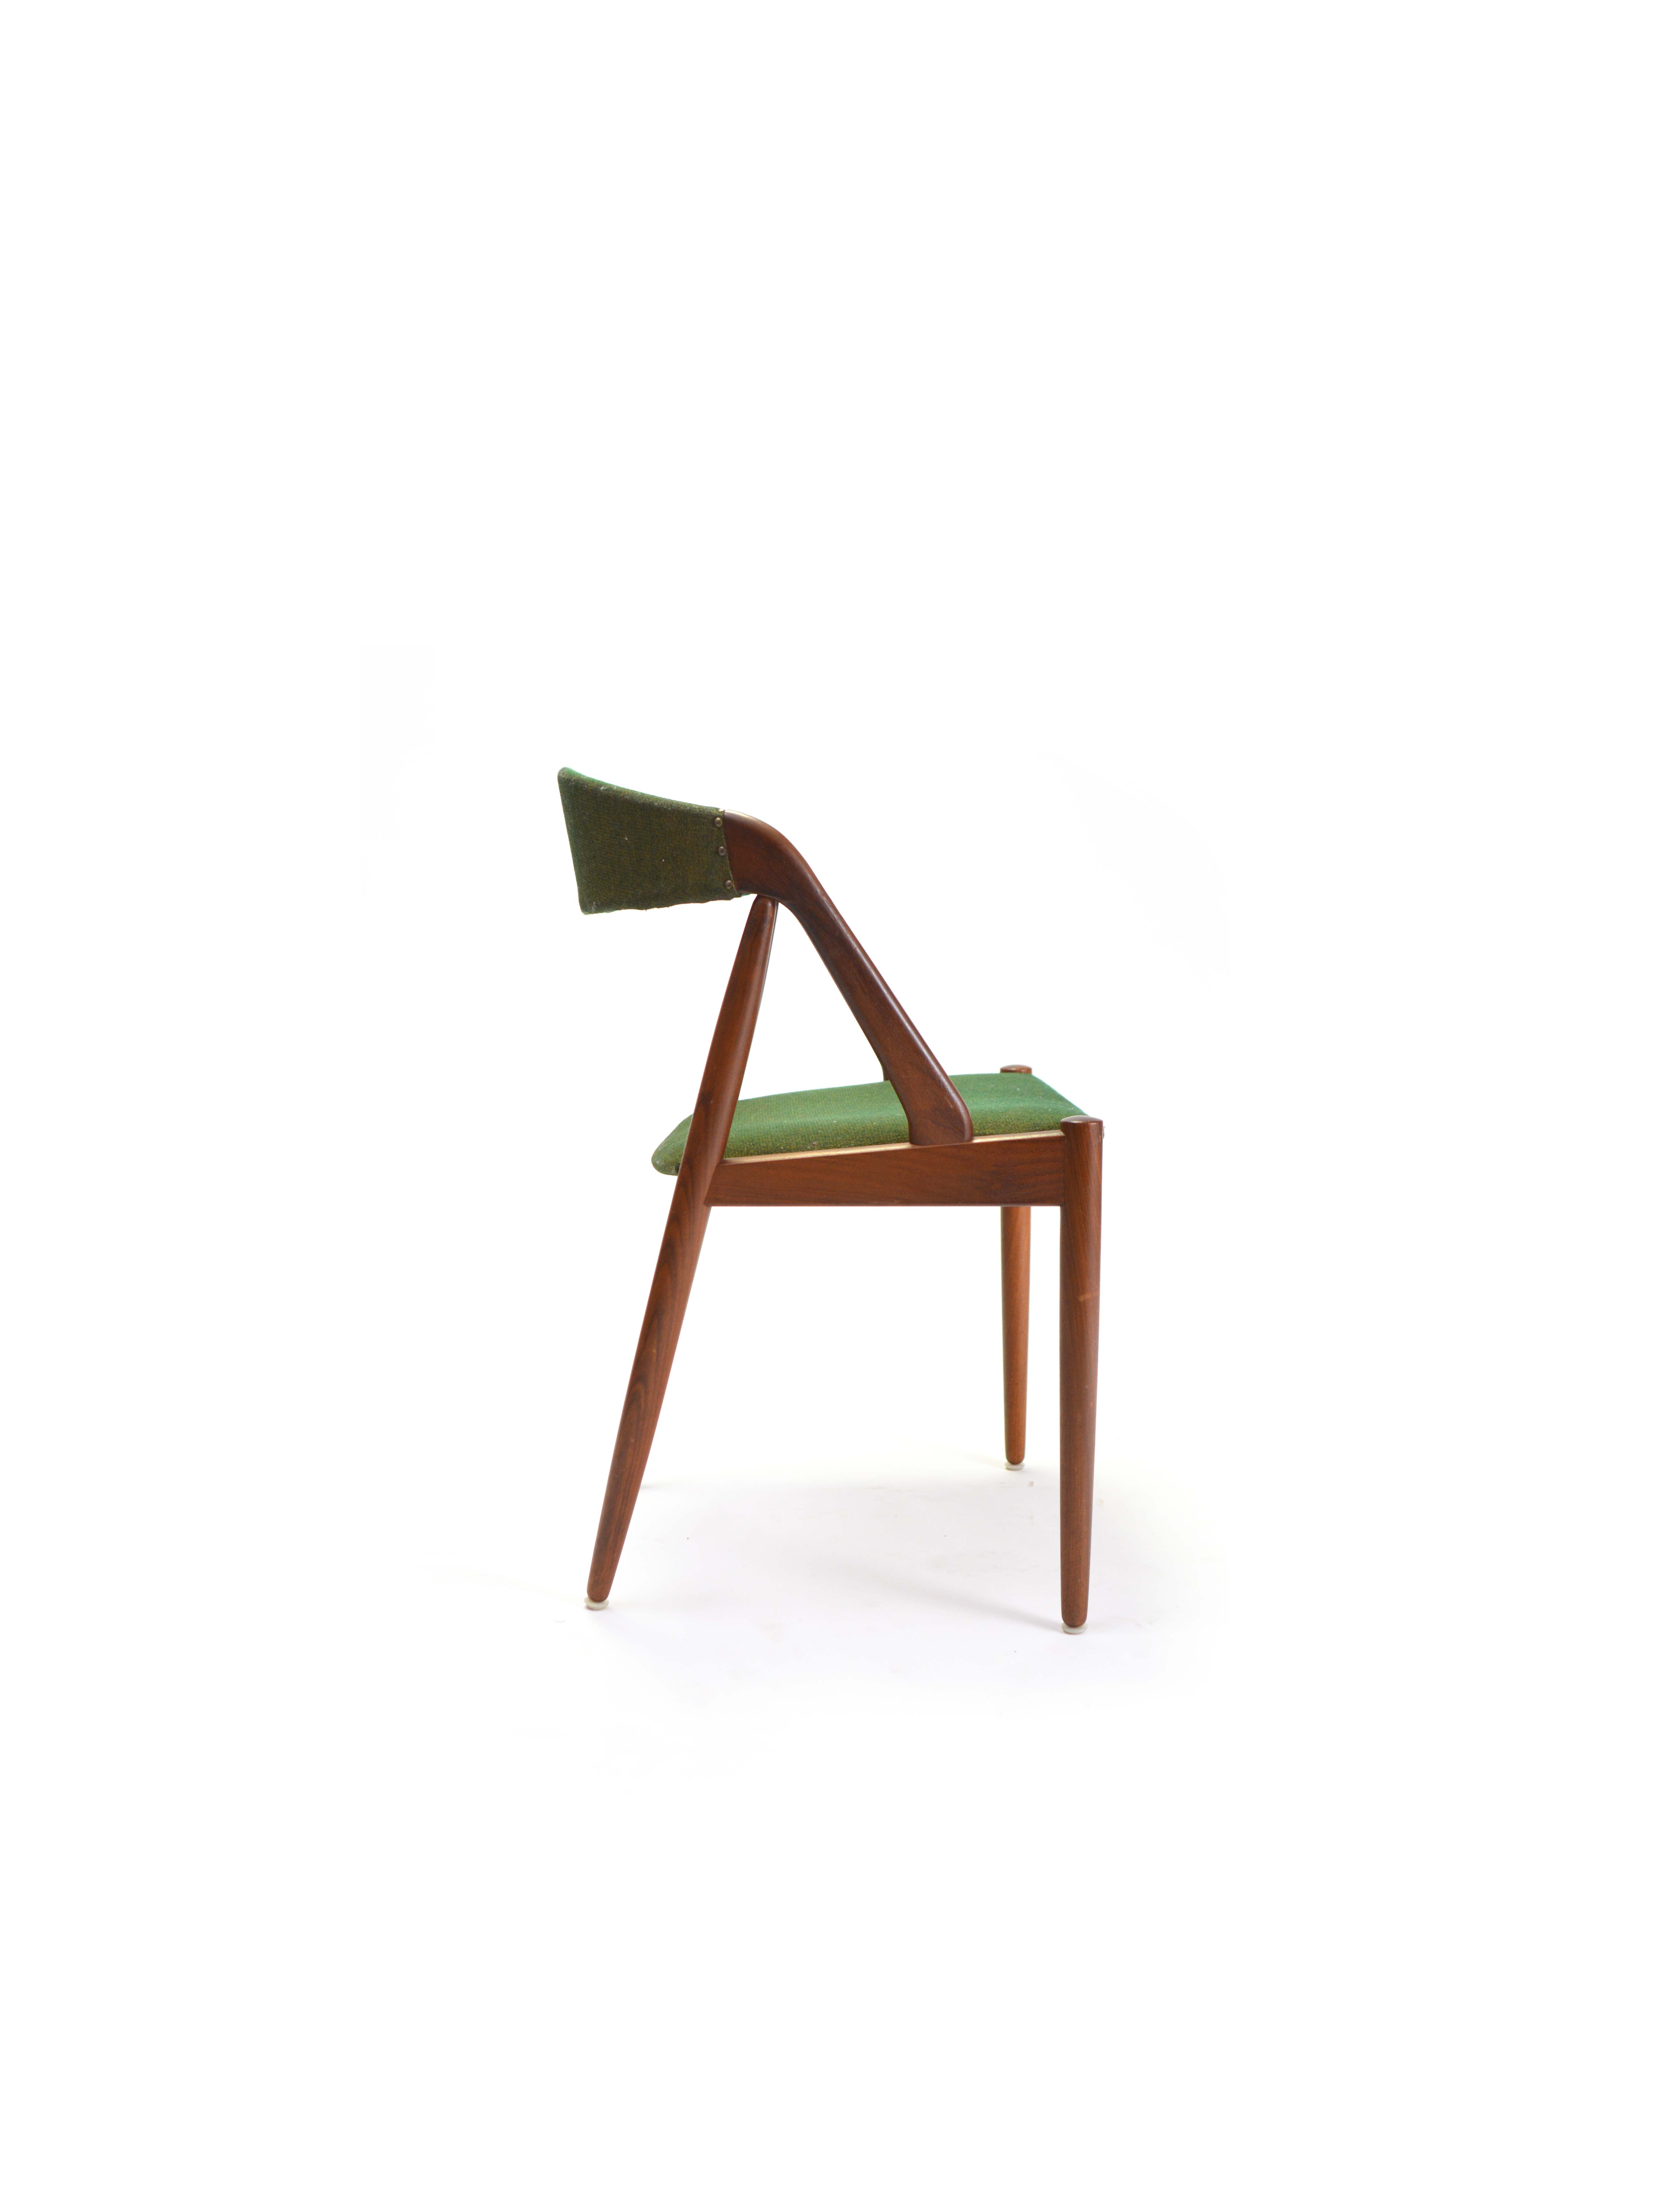 CHAIR BY KAI KRISTIANSEN